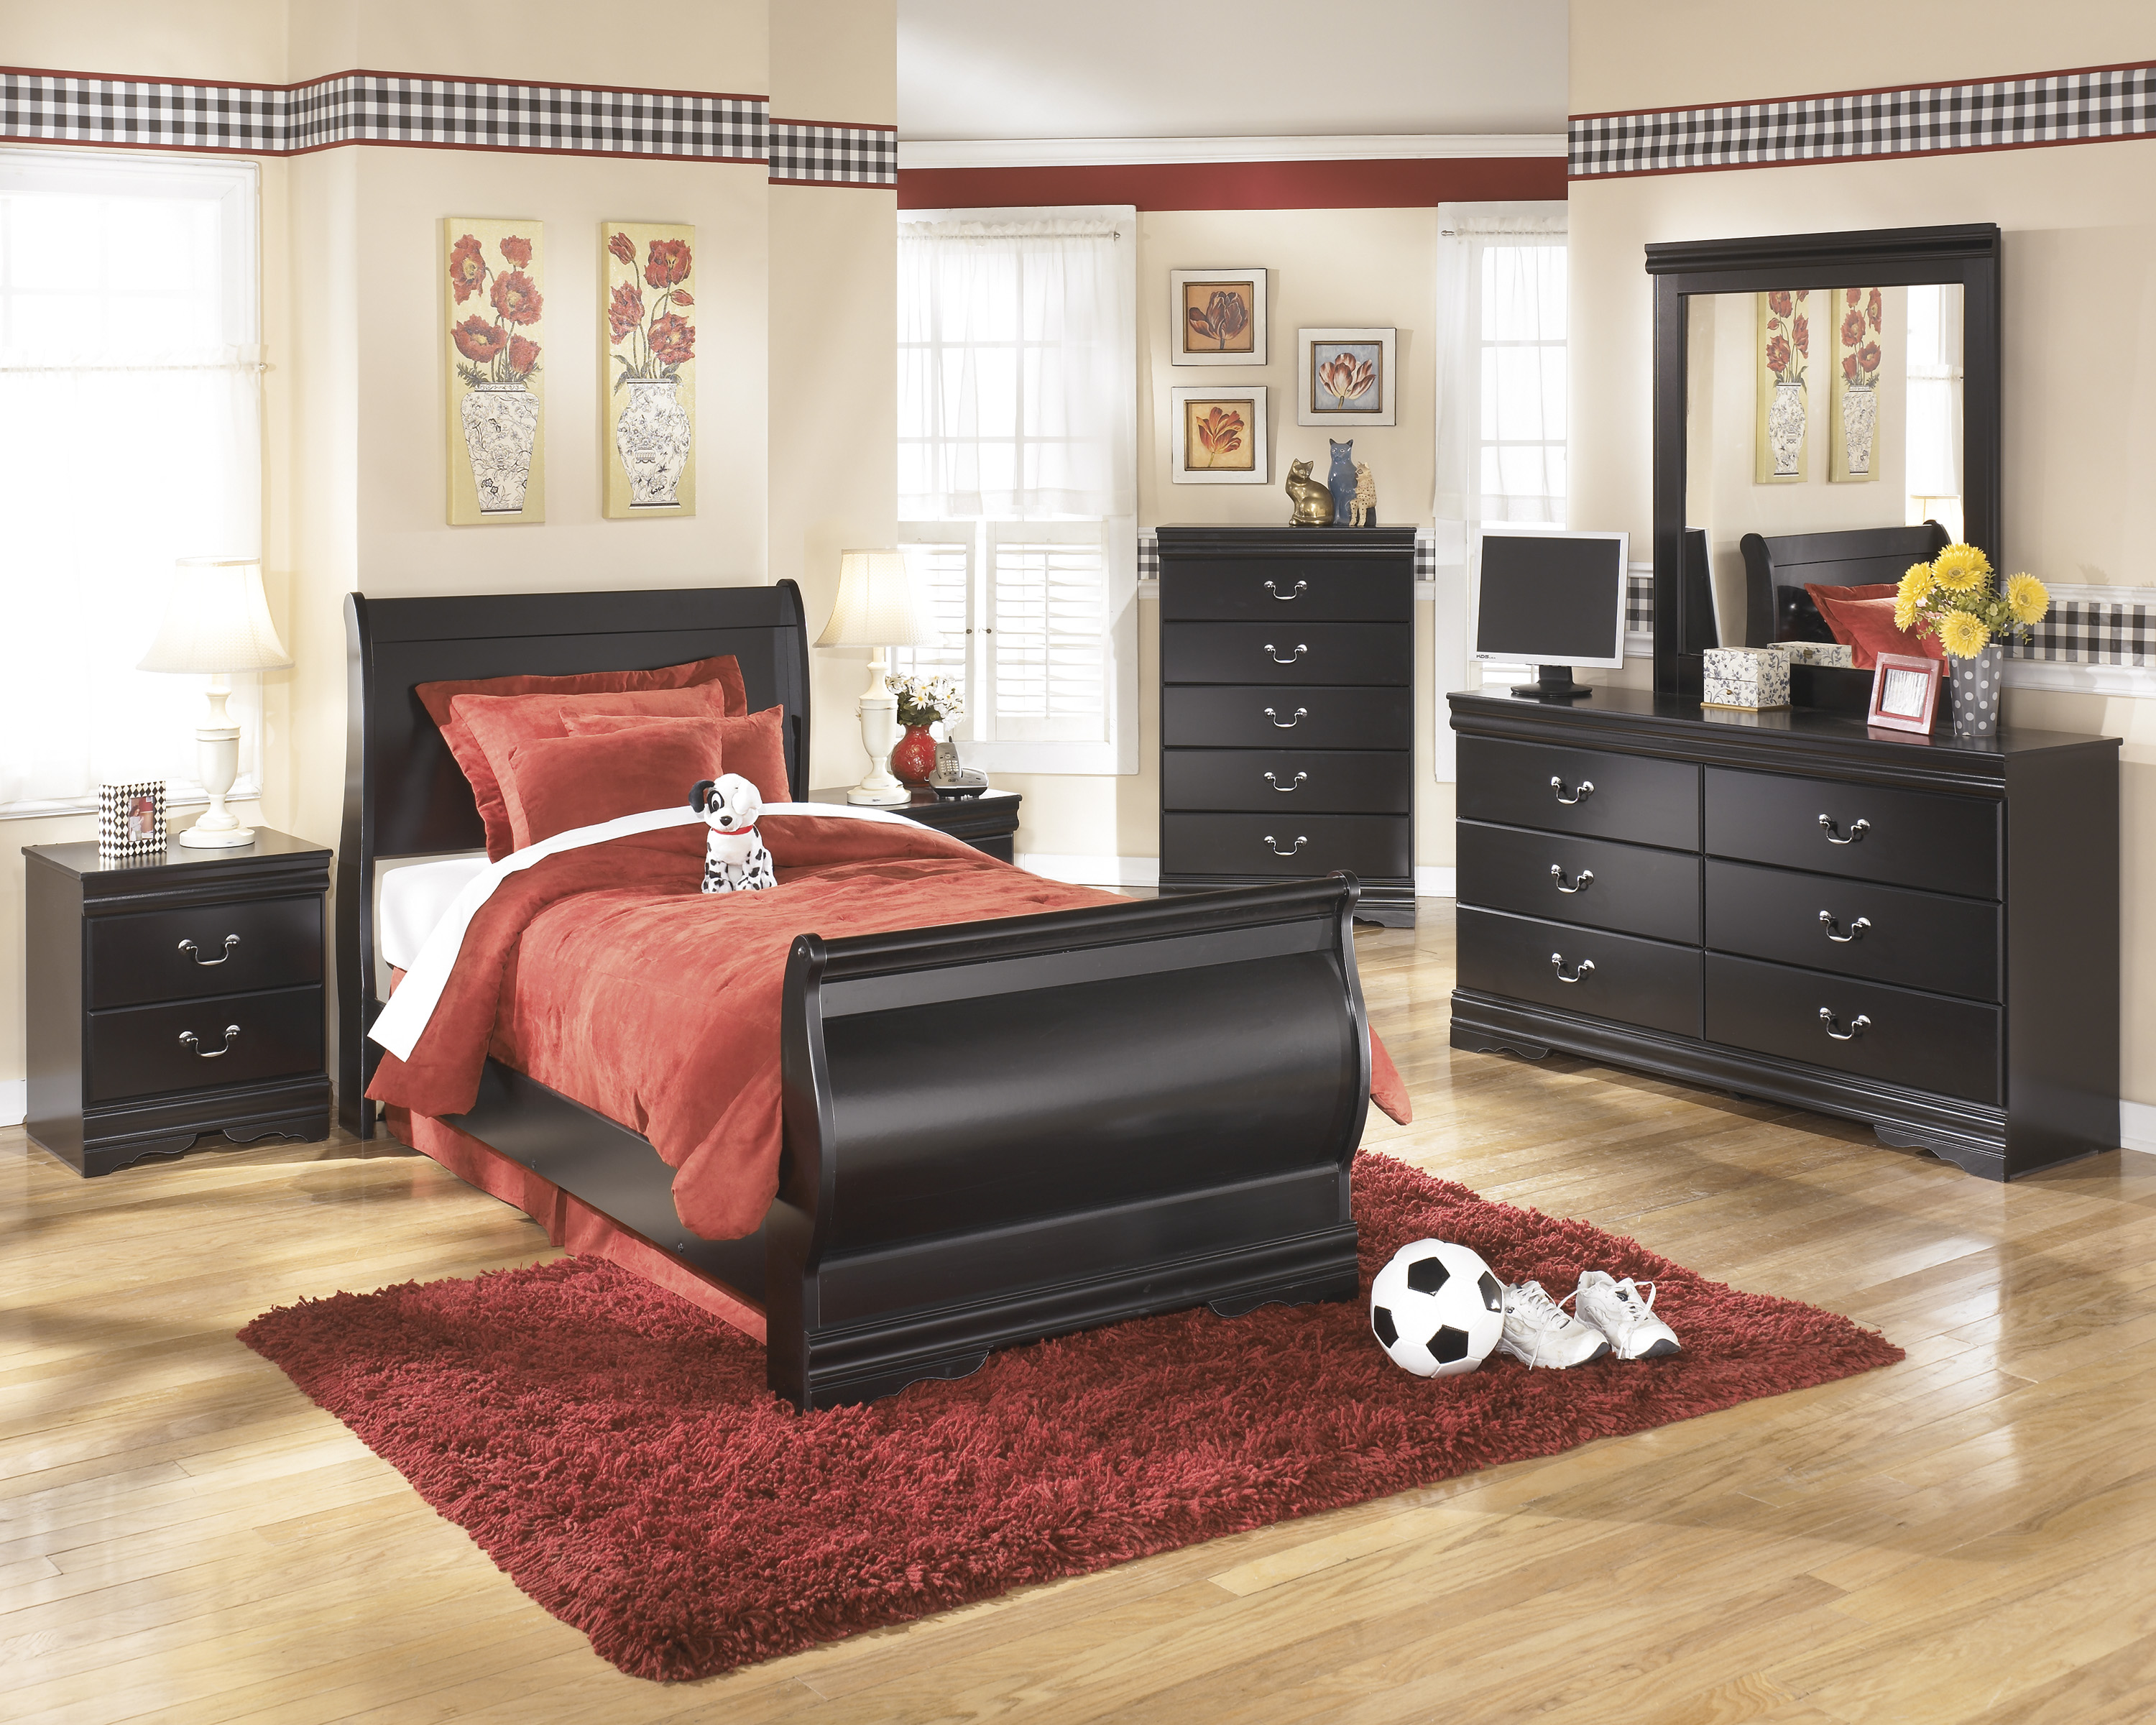 Huey Vineyard Twin Sleigh Bed, Dresser & Mirror  / $18.99 A Week